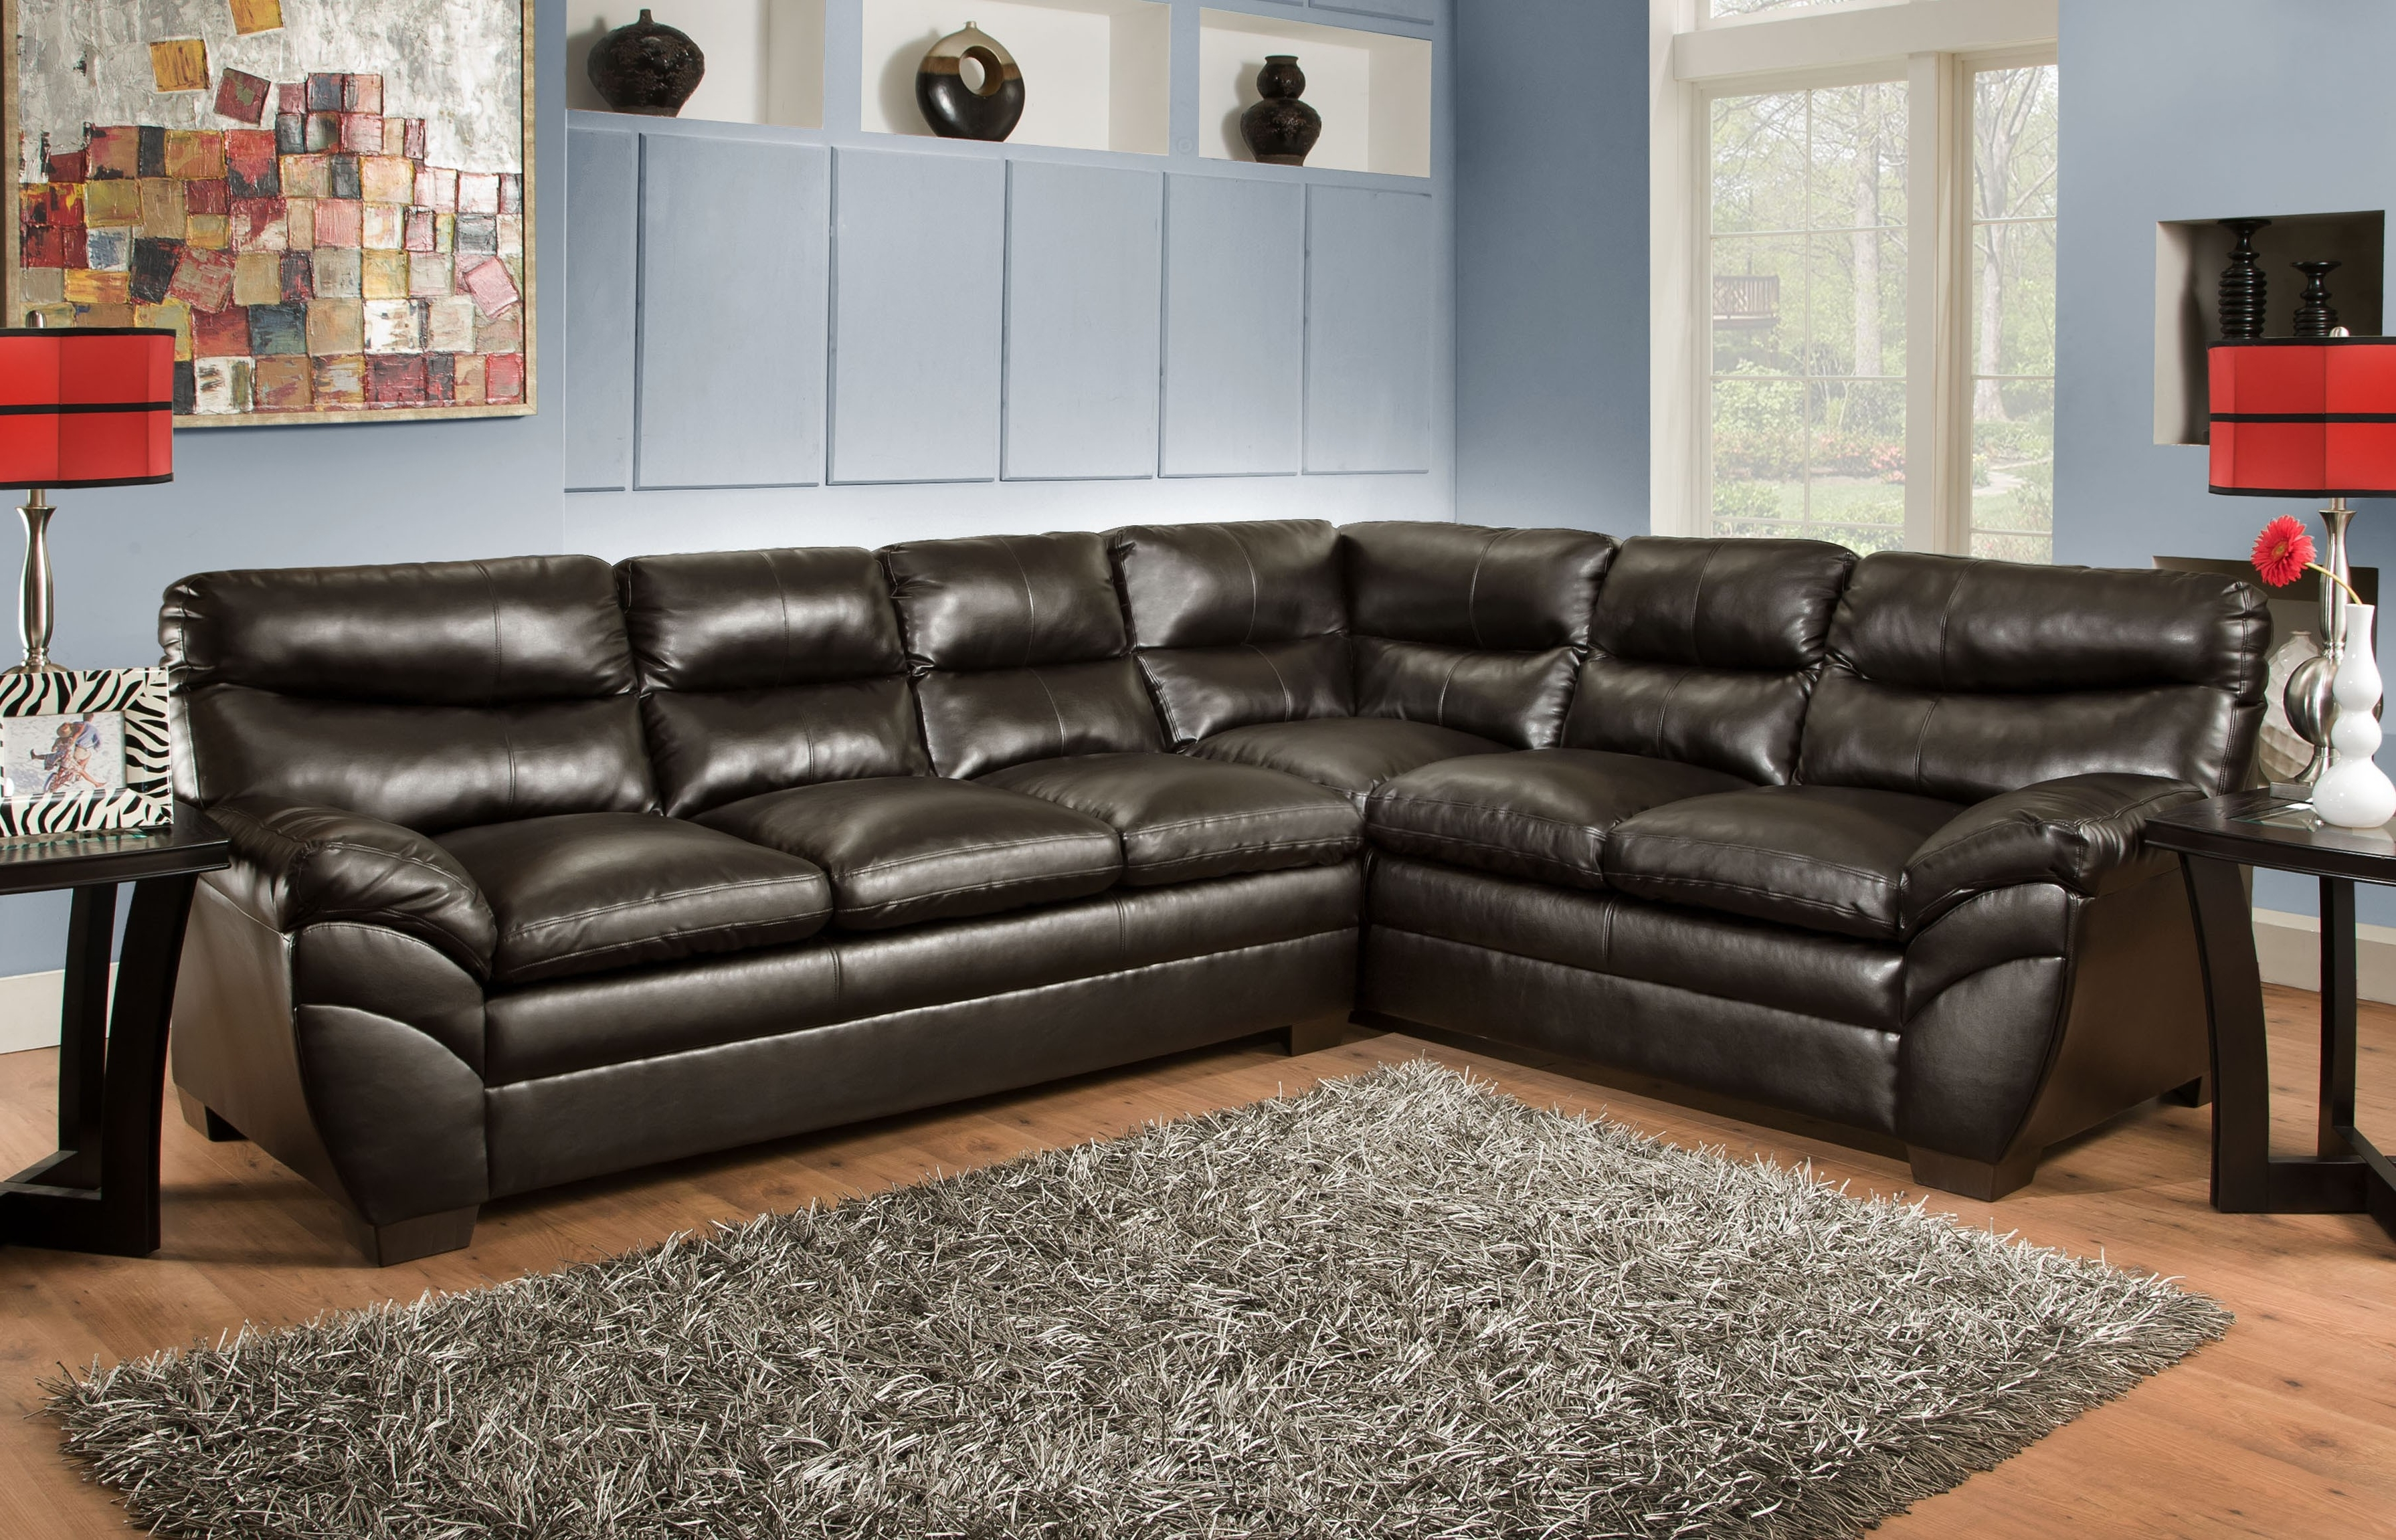 Orange County Sofas In Fashionable Sectional Sofas Orange County – Hotelsbacau (View 14 of 20)